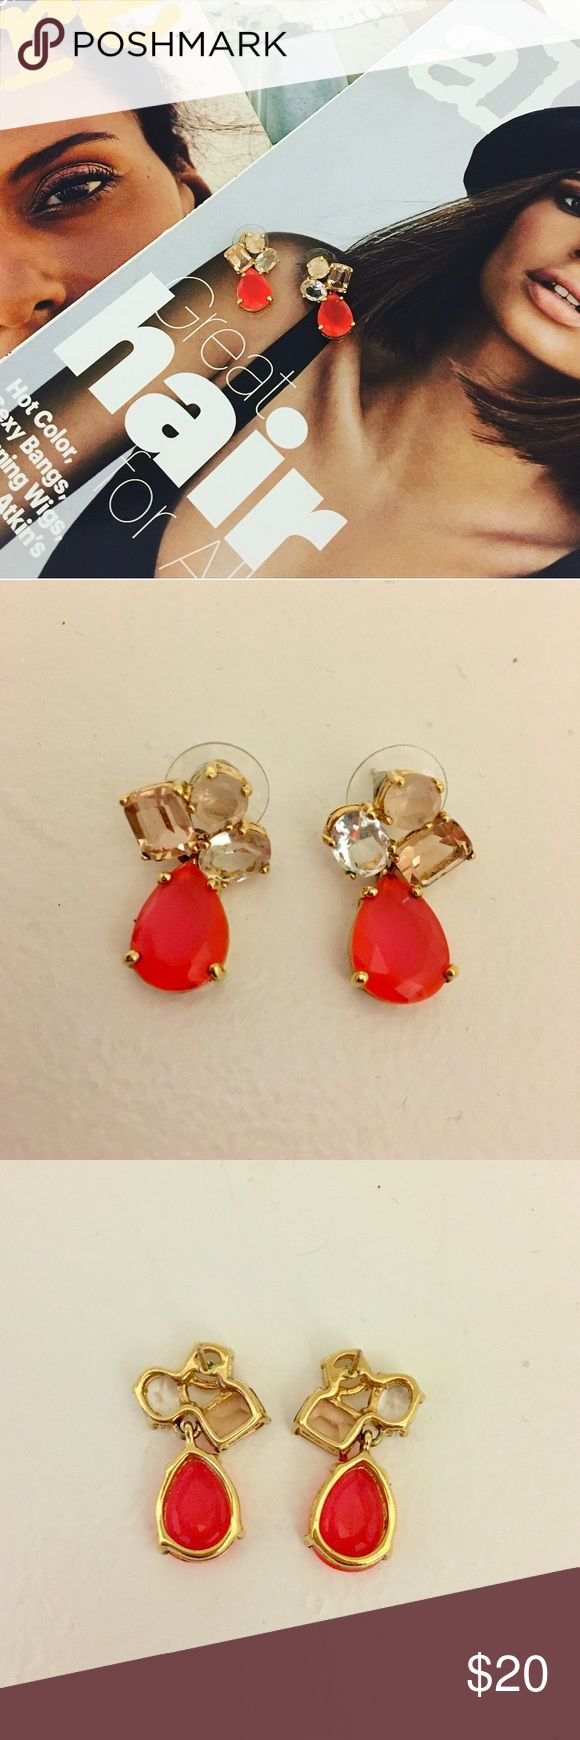 KATE SPADE Nude + Neon Crystal Cluster Earrings Stunning, delicate crystal drop earrings by Kate Spade are chic with a touch of neon for some extra sizzle! In good used condition. kate spade Jewelry Earrings